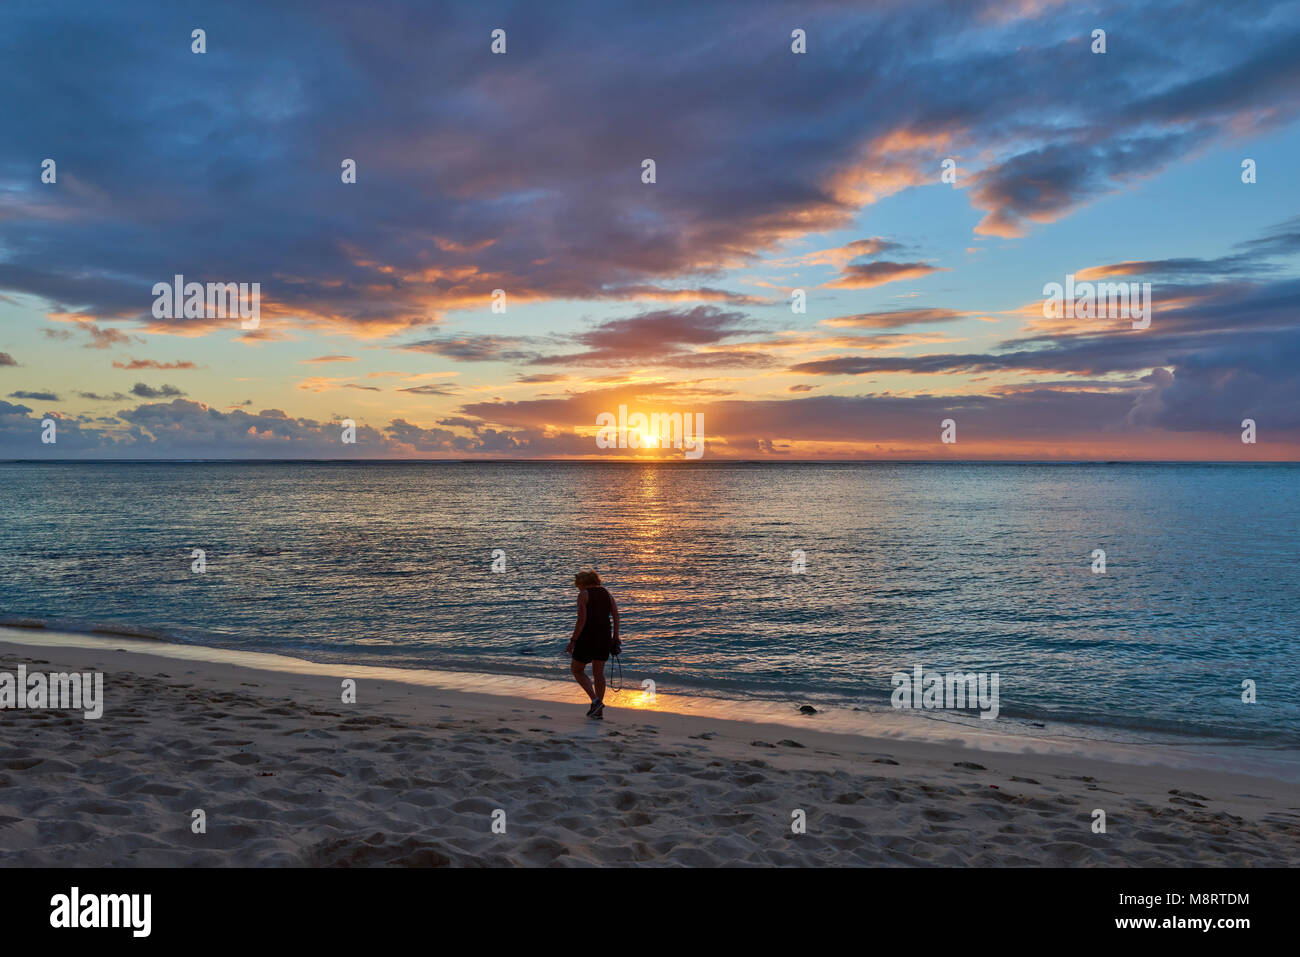 A Woman walking along Le Morne Beach on the Island of Mauritius at Sunset one Summers evening. - Stock Image